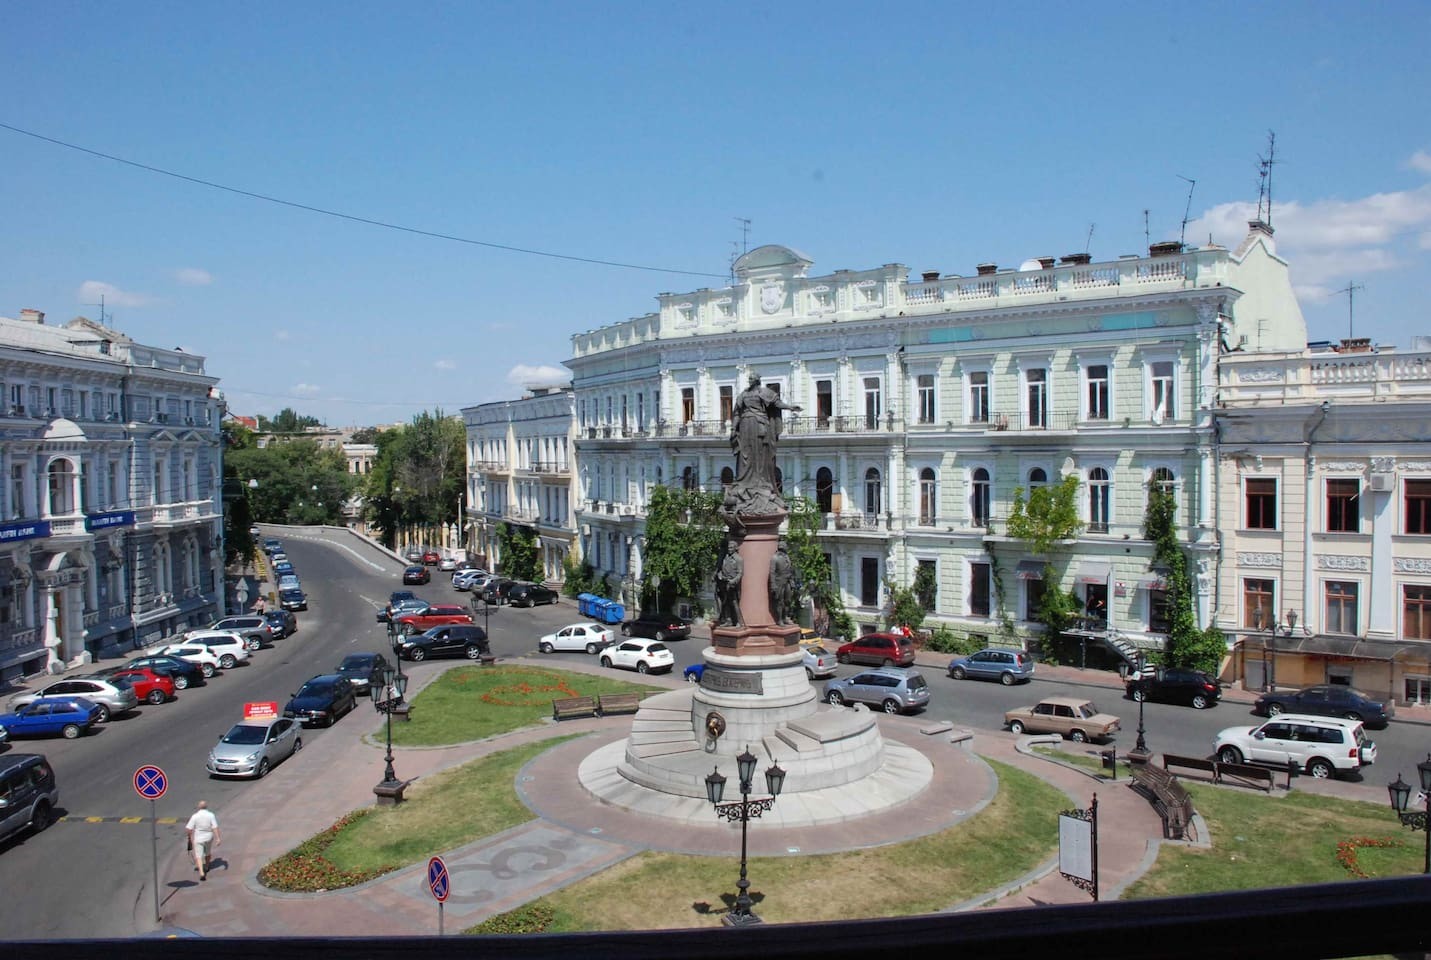 View from balcony of famous Monument to Catherine the Great.